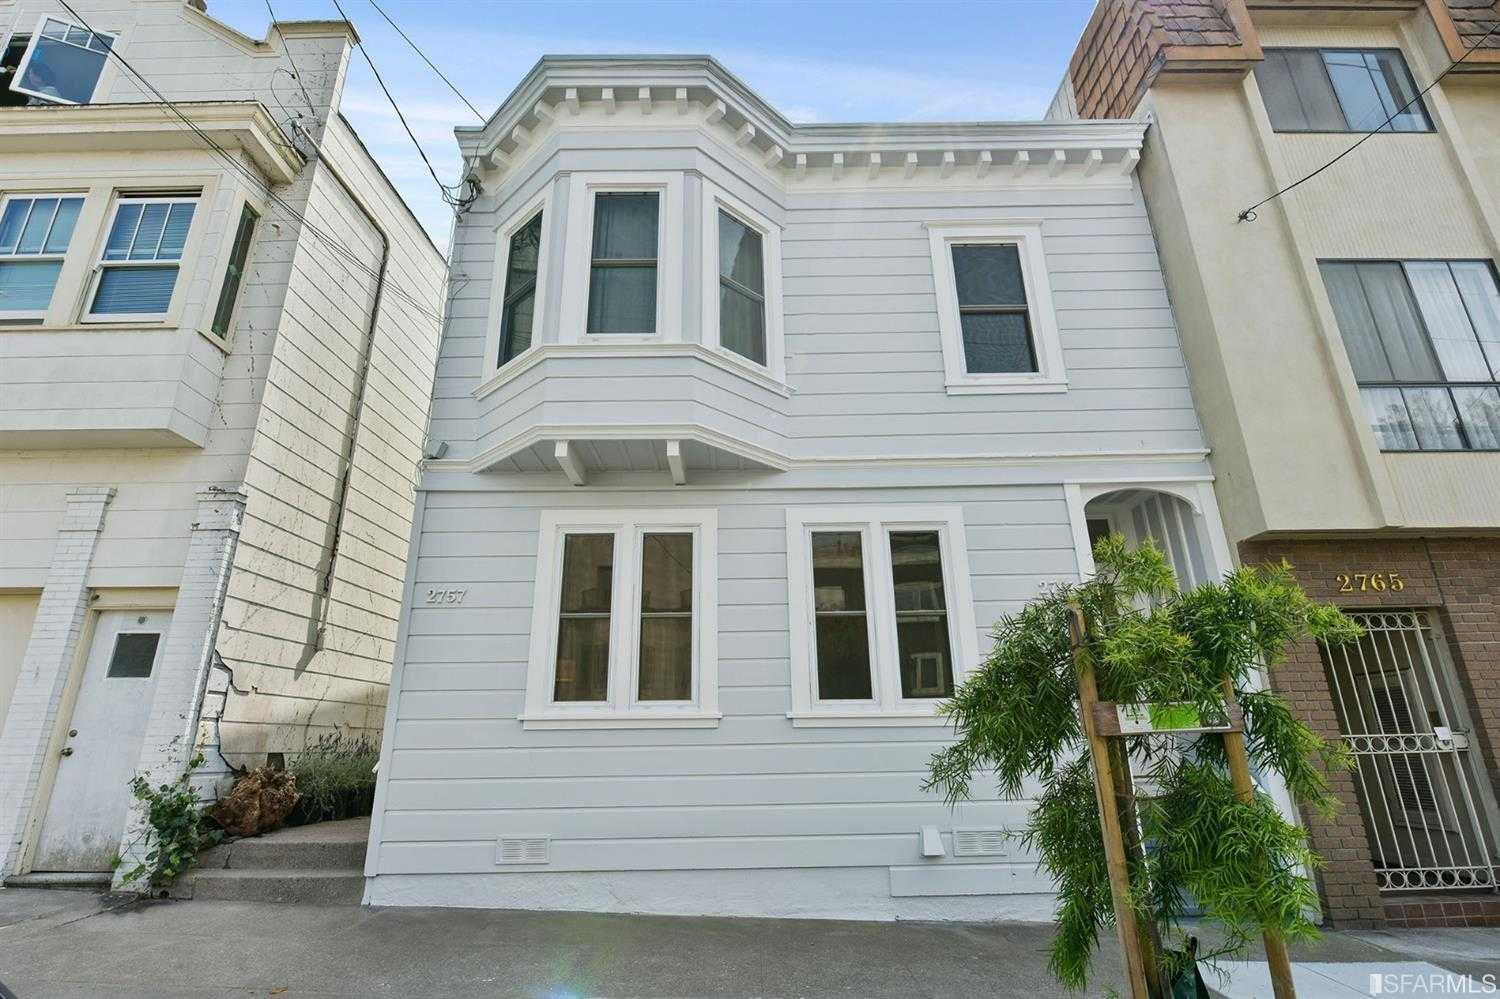 2757 Greenwich St San Francisco, CA 94123